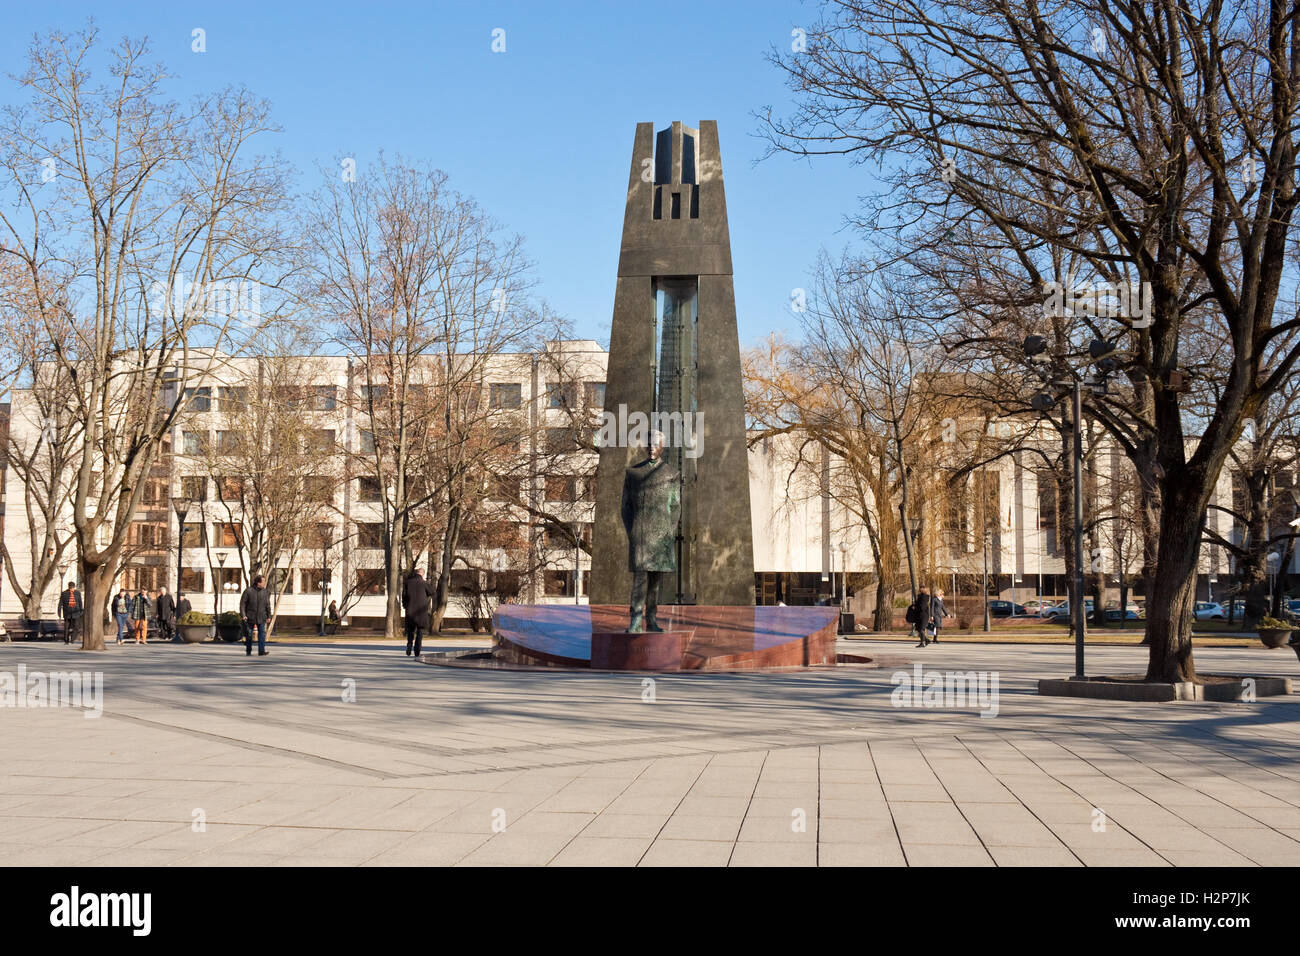 Vilnius, Lithuania - March 17, 2015: Monument to Vincas Kudirka, lithuanian National Hero, on the square in Vilnius. Stock Photo